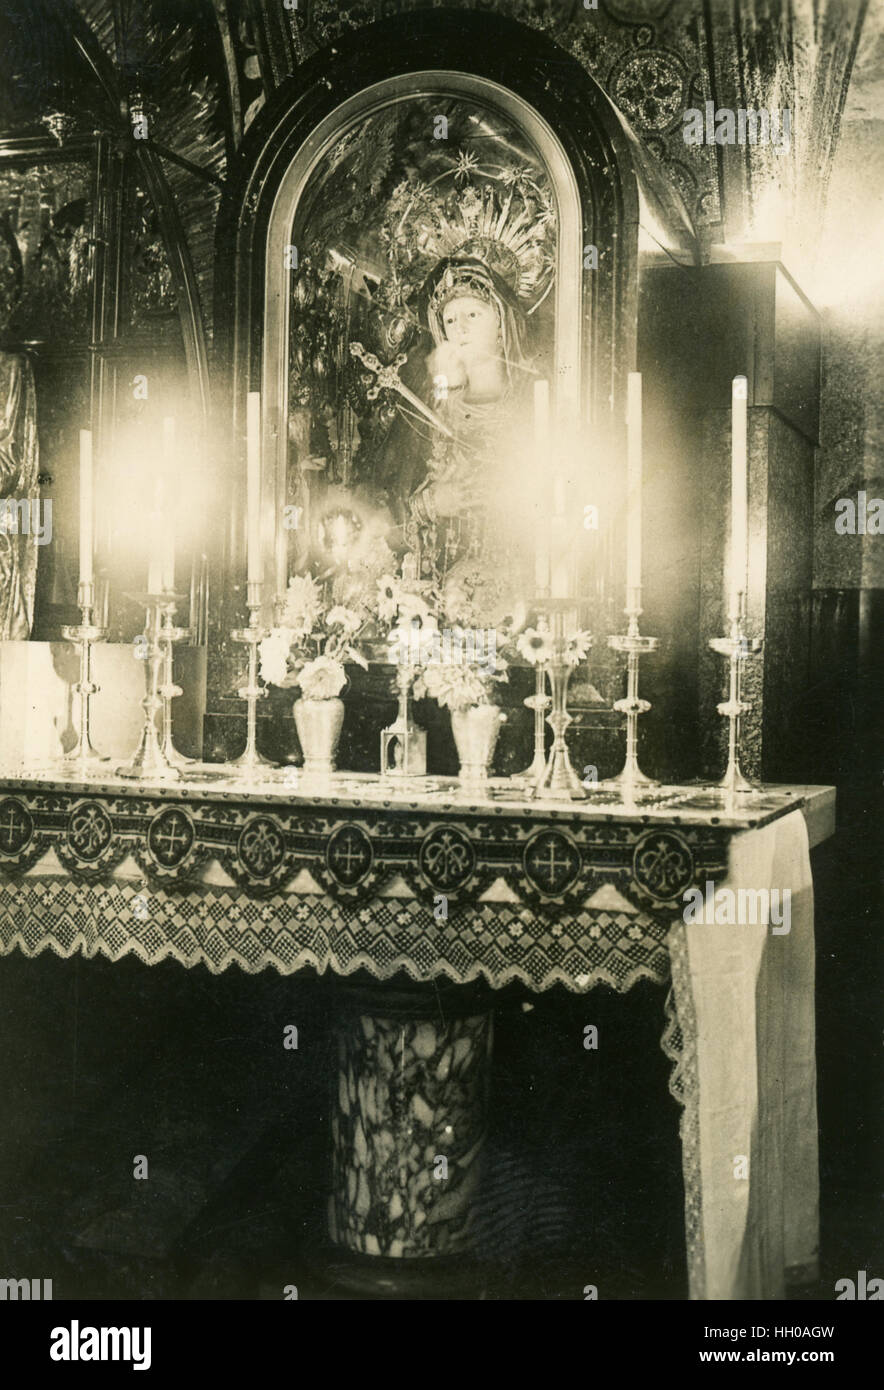 Stabat Mater Altar, Calvary, XIII, Station, Jerusalem, Palestine, Israel, 1946,West Bank, Historical Images, Black Stock Photo